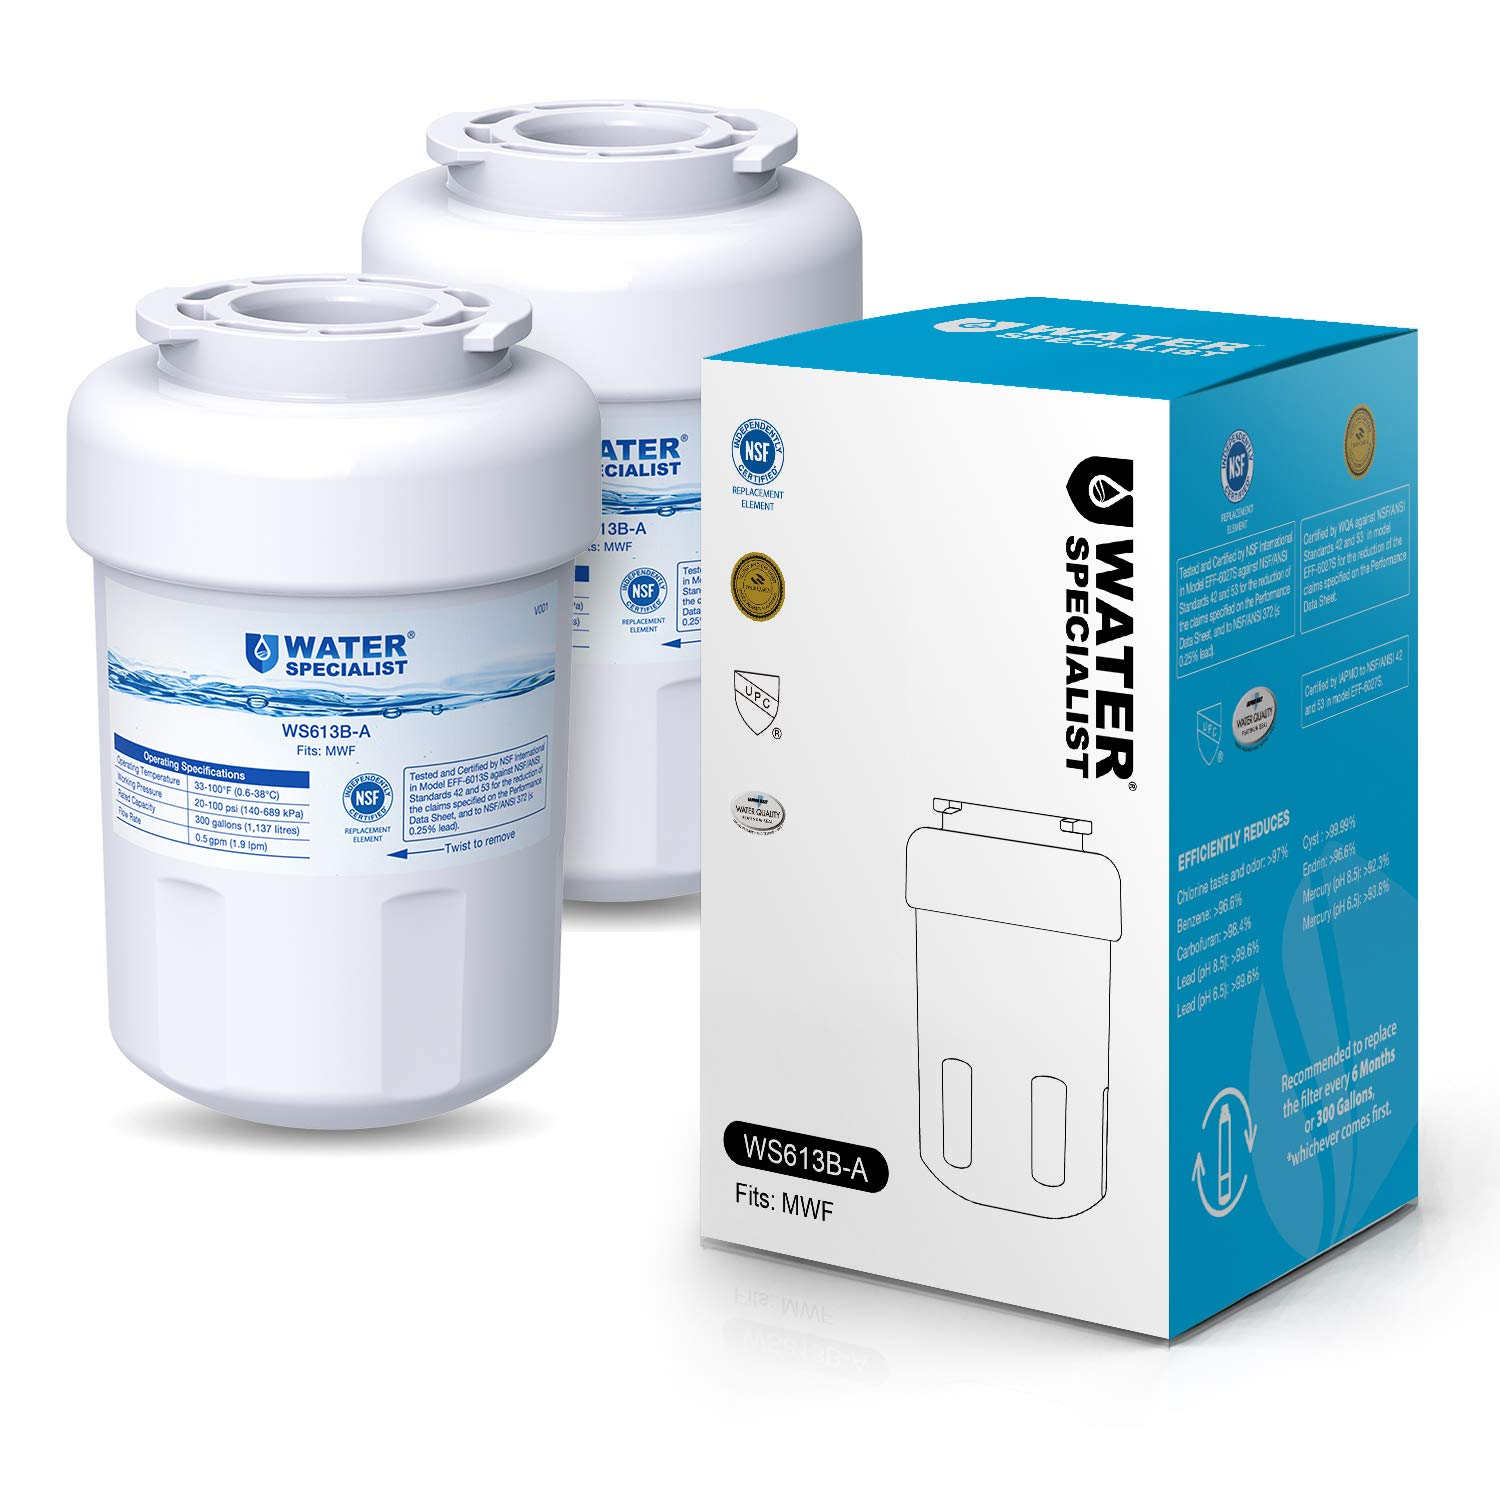 Waterspecialist NSF 53&42 Certified MWF Refrigerator Water Filter, Replacement for GE SmartWater MWFP , MWFA, GWF, HDX FMG-1, WFC1201, GSE25GSHECSS, ...